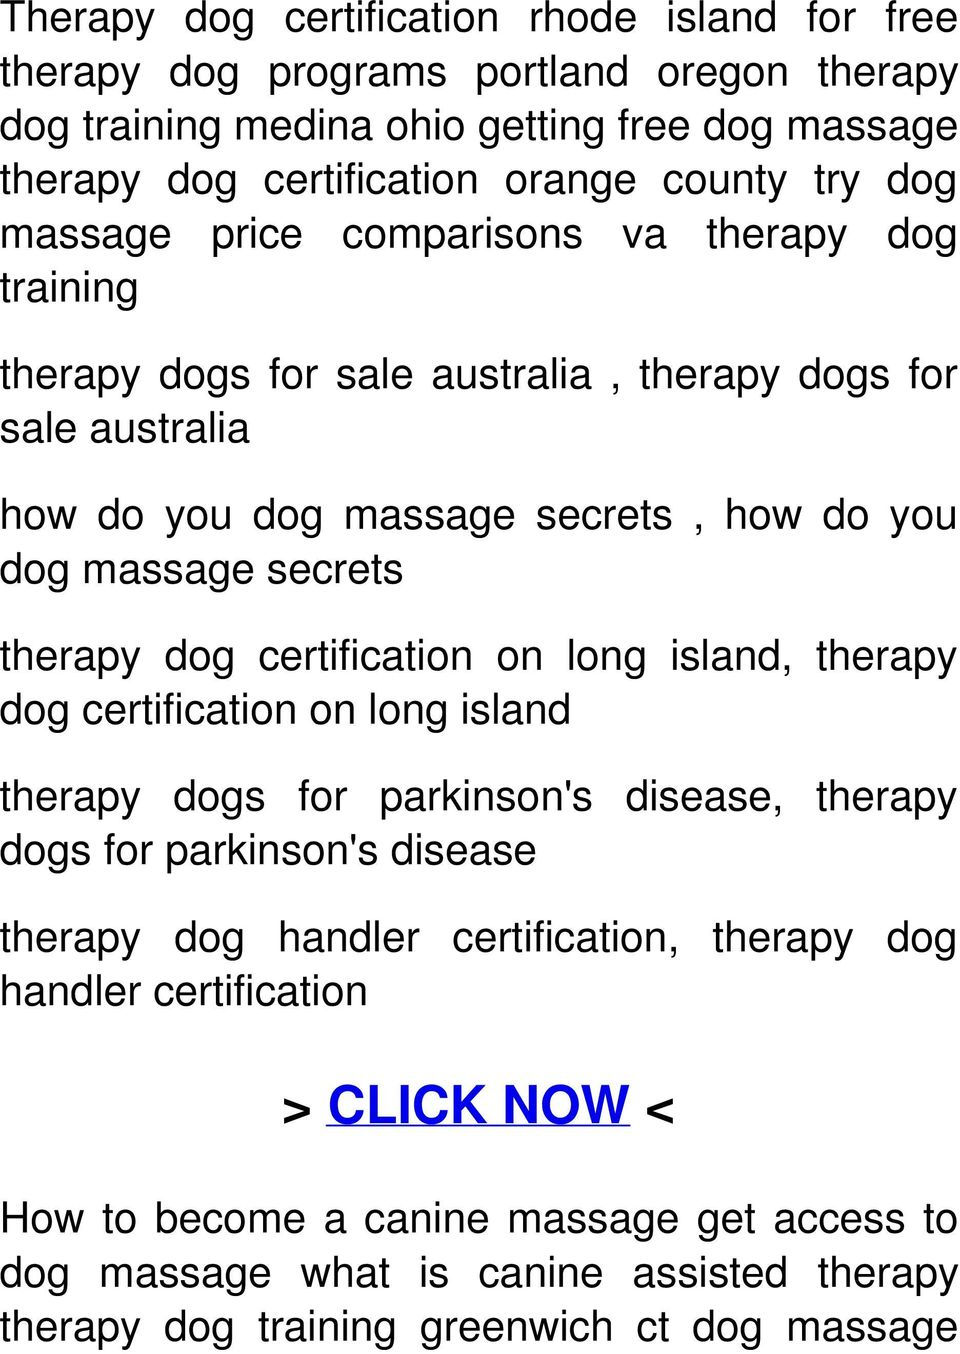 therapy dog certification on long island, therapy dog certification on long island therapy dogs for parkinson's disease, therapy dogs for parkinson's disease therapy dog handler